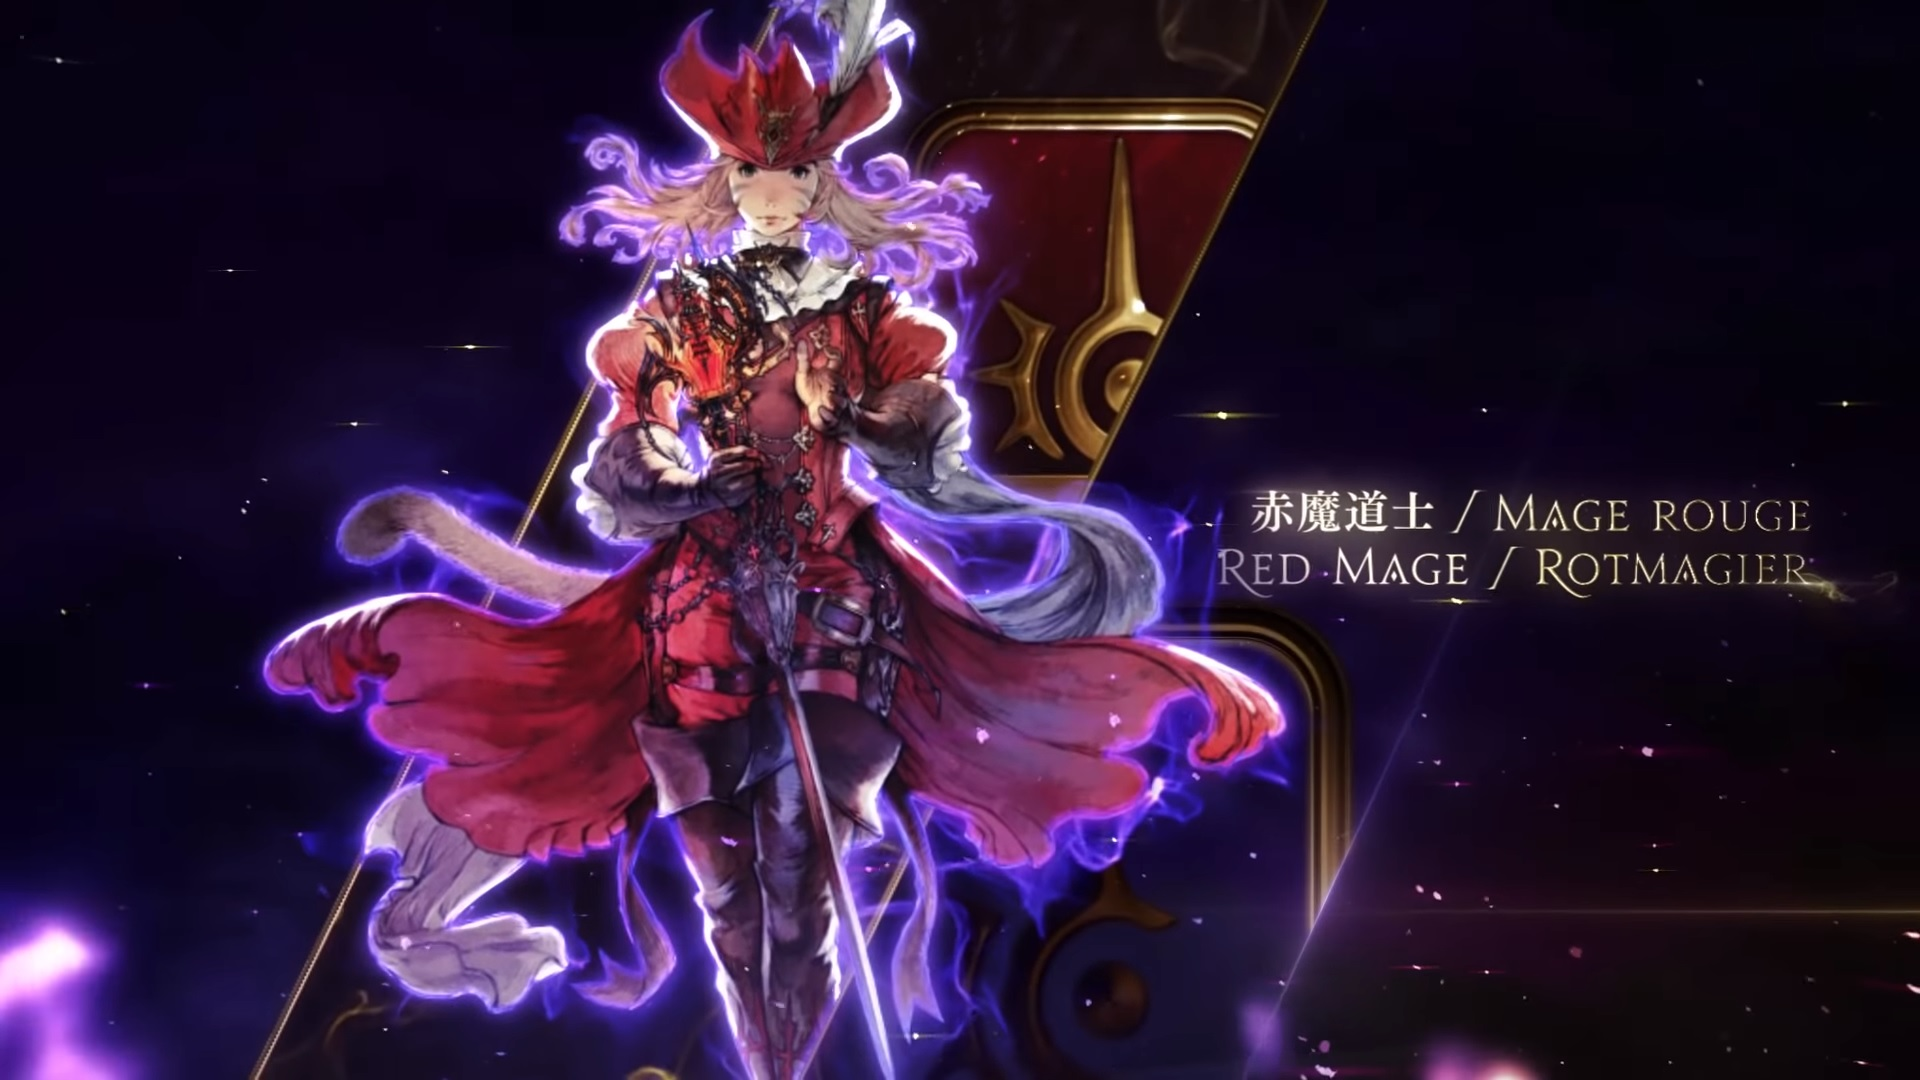 Ff14 Red Mage Job Guide Shadowbringers Changes Rework Skills